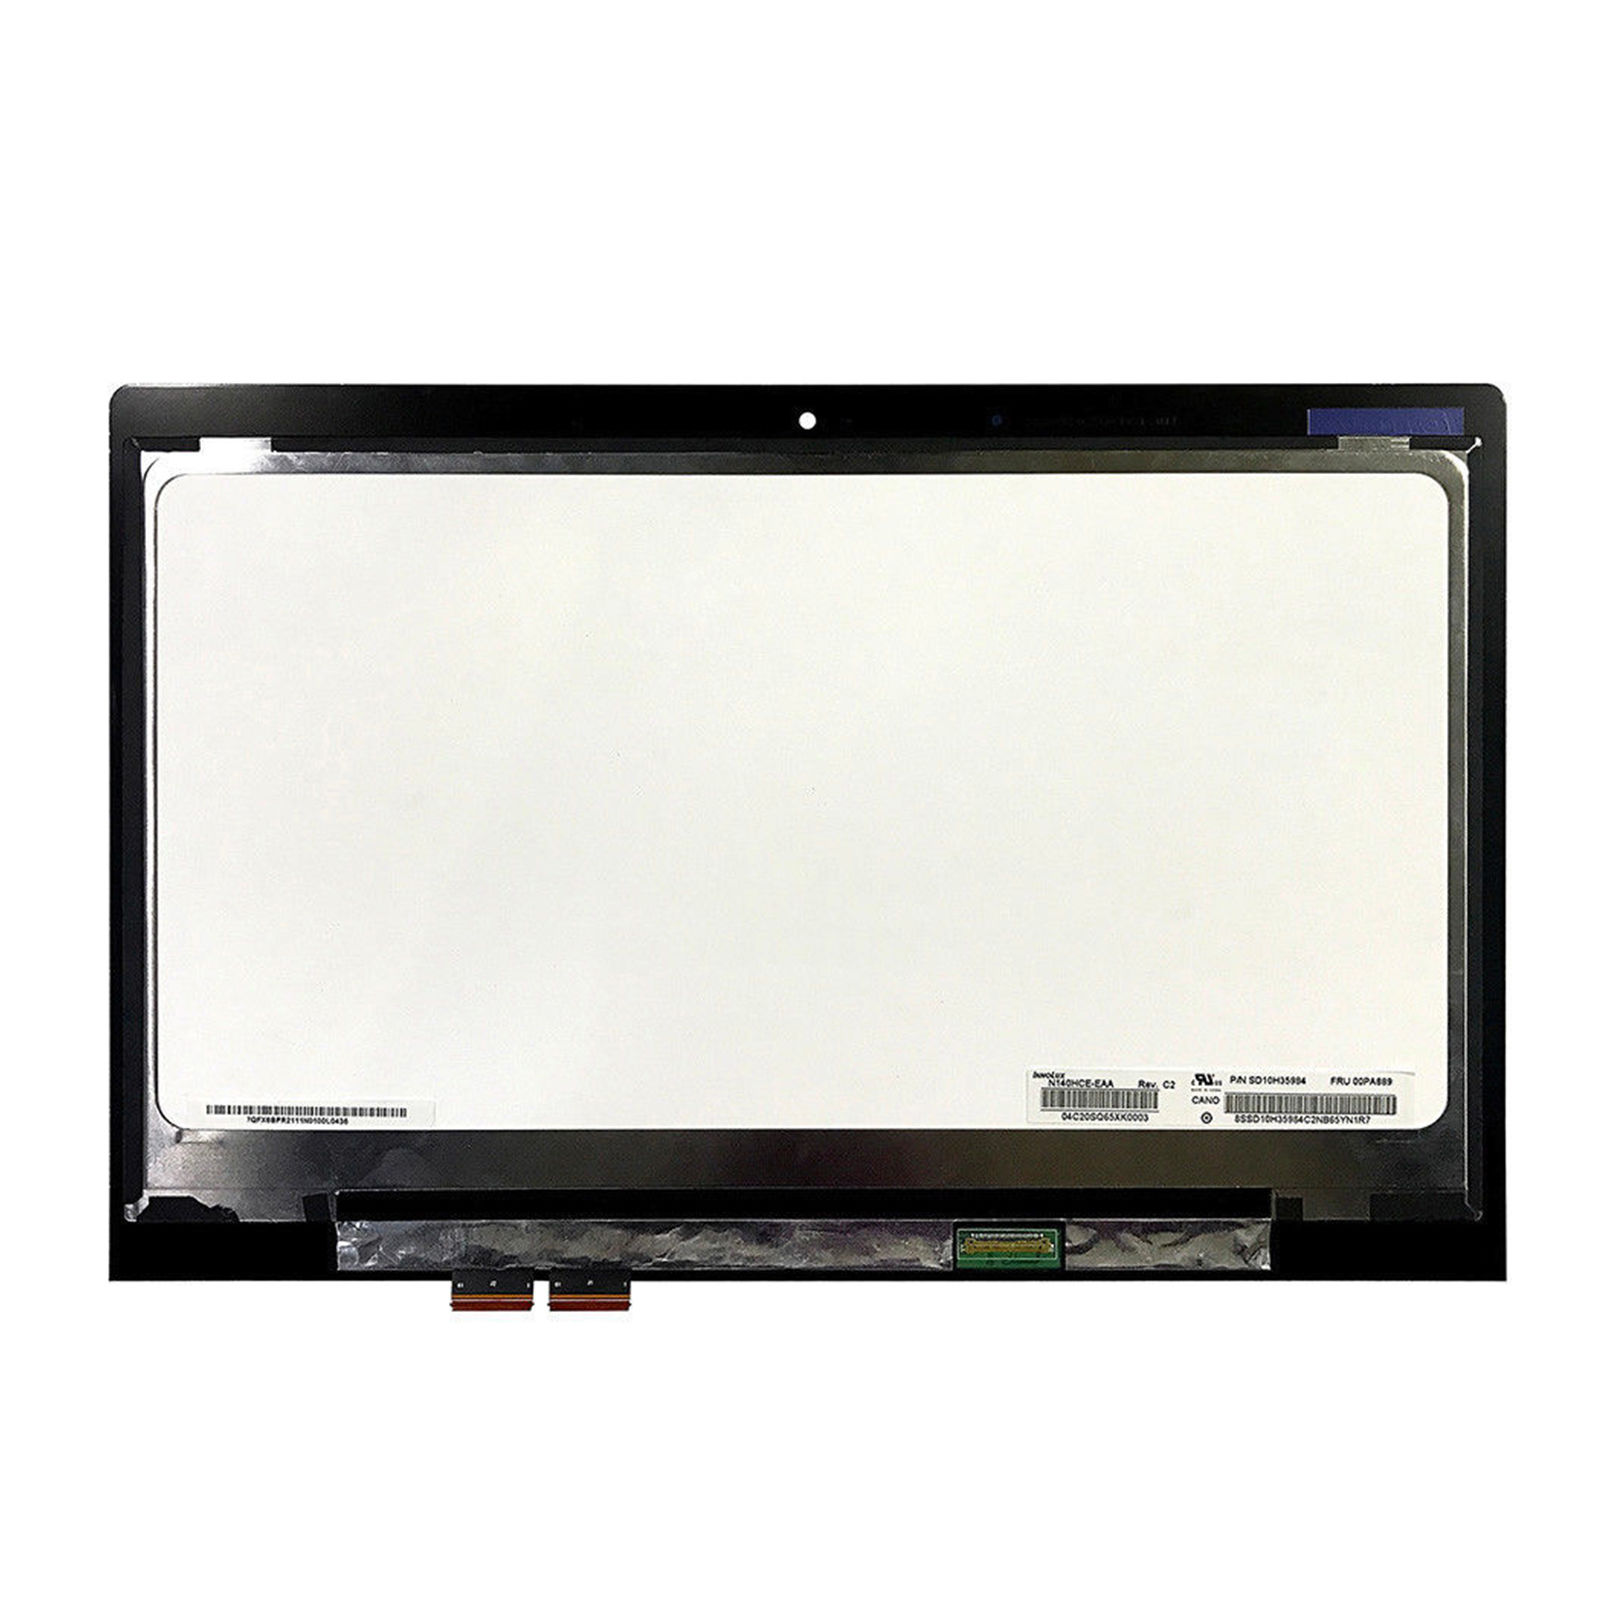 For Flex 3 1480 Flex 3 1480 LCD Display+Touch Screen Digitizer Assembly Good Quality Tested Before Shipping